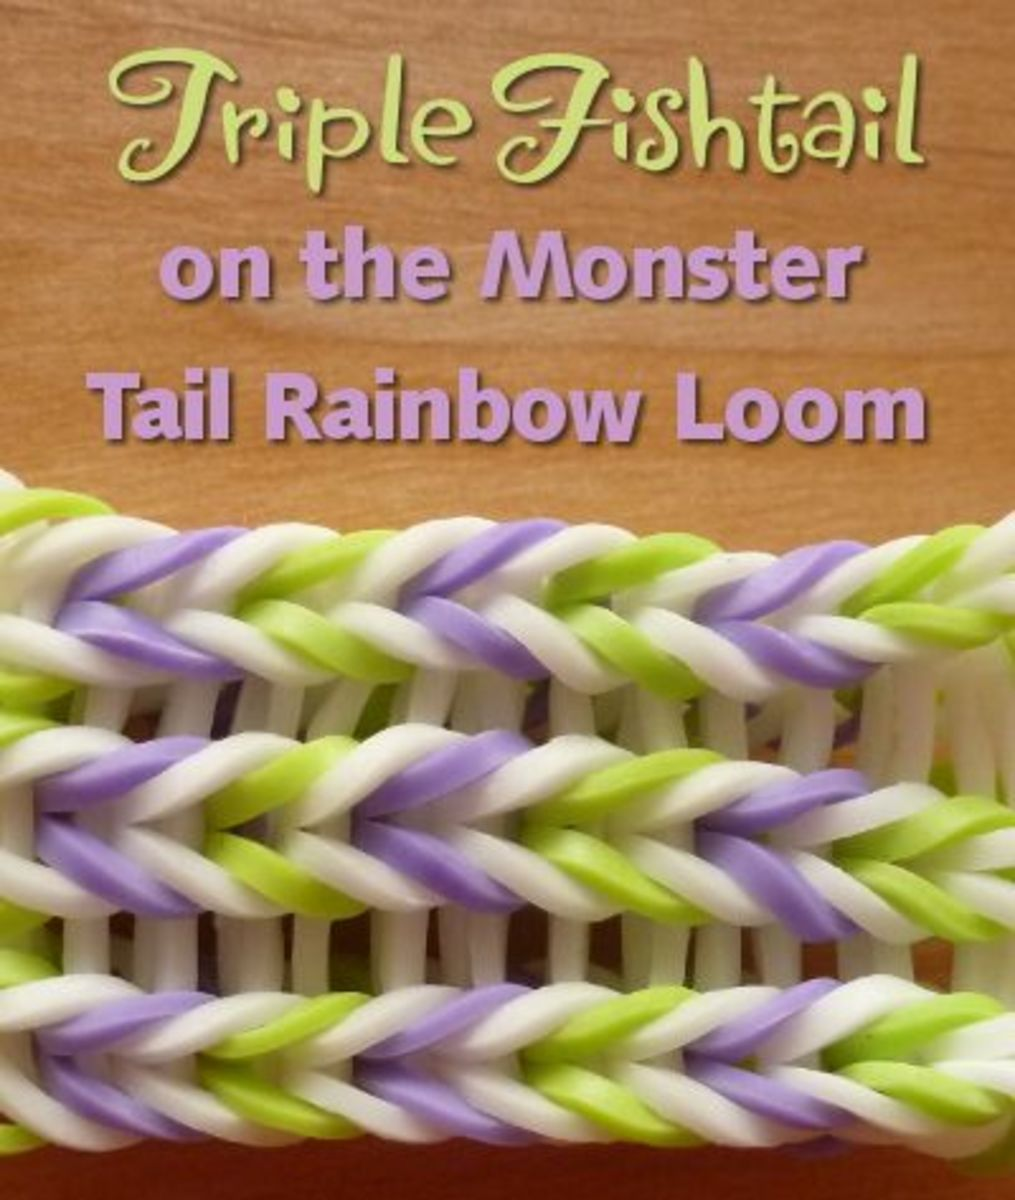 The triple fishtail pattern for the monster tail rainbow loom